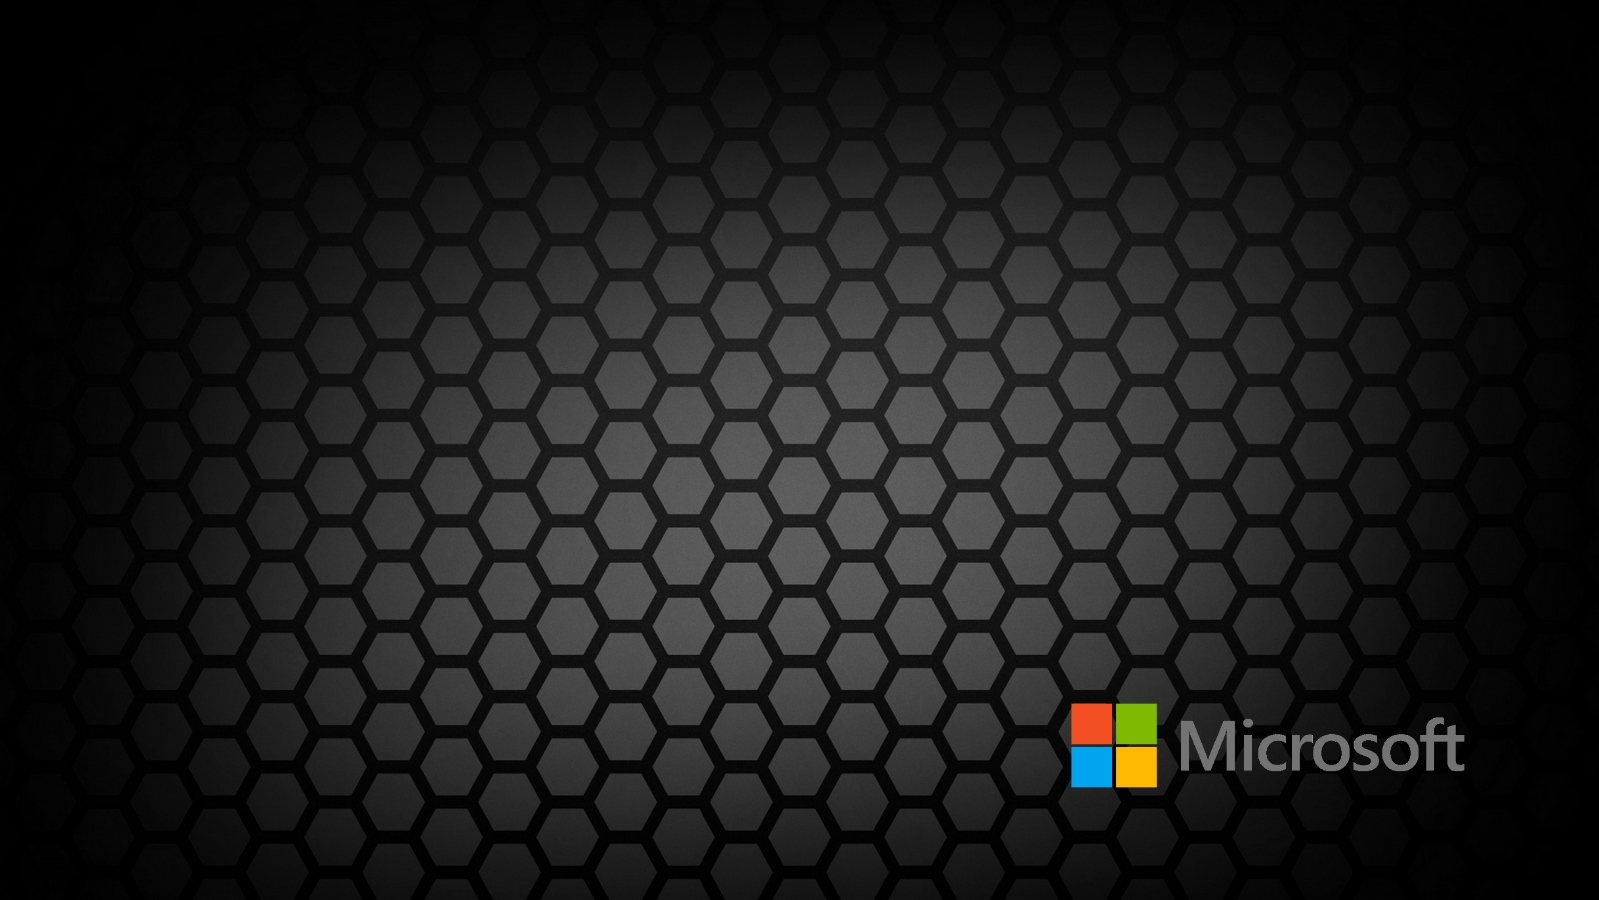 microsoft windows wallpapers by gifteddeviant - photo #10